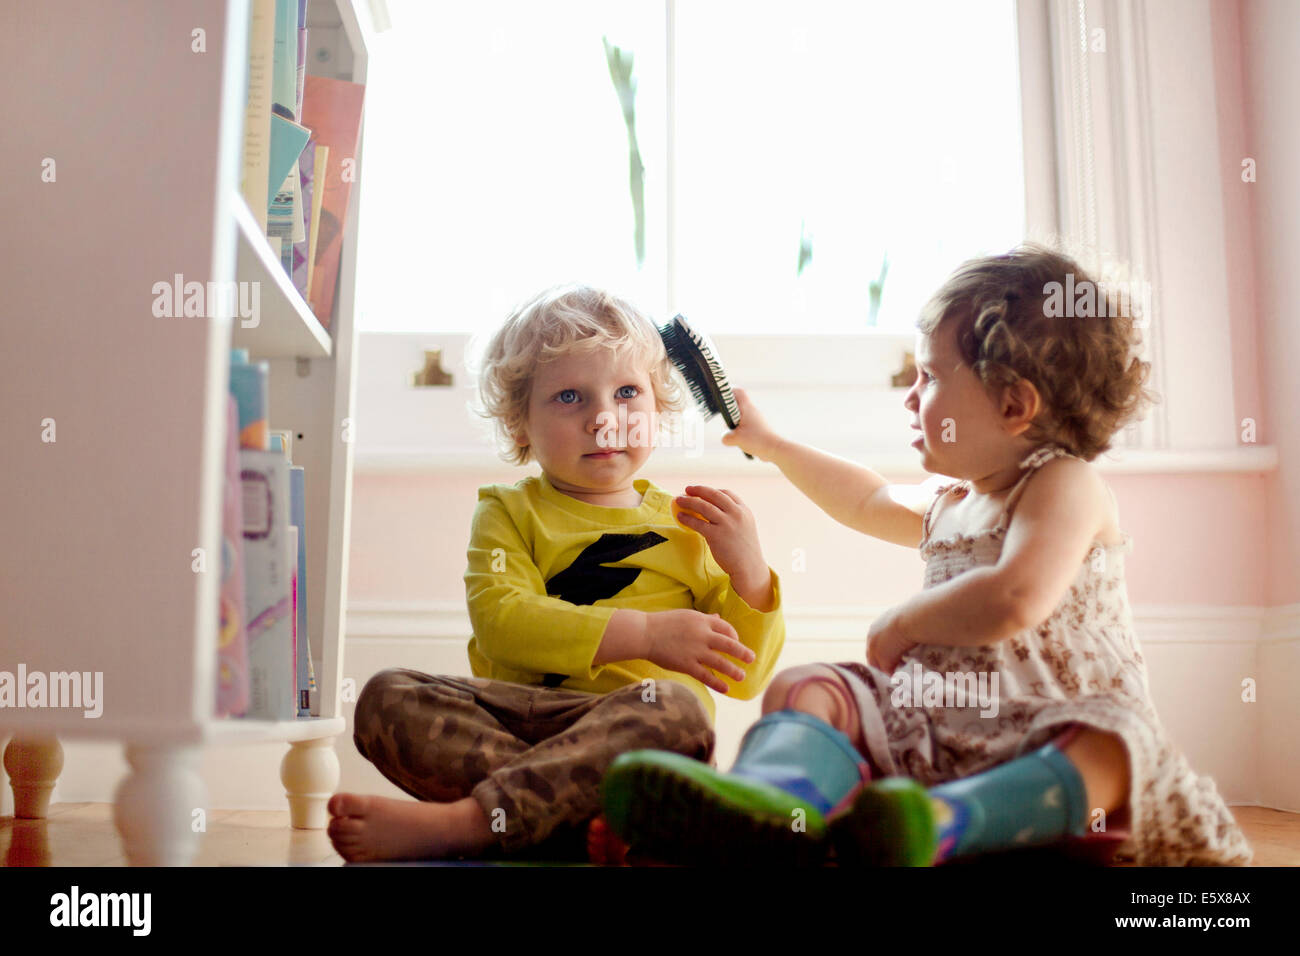 Female toddler brushing male toddlers hair in playroom - Stock Image